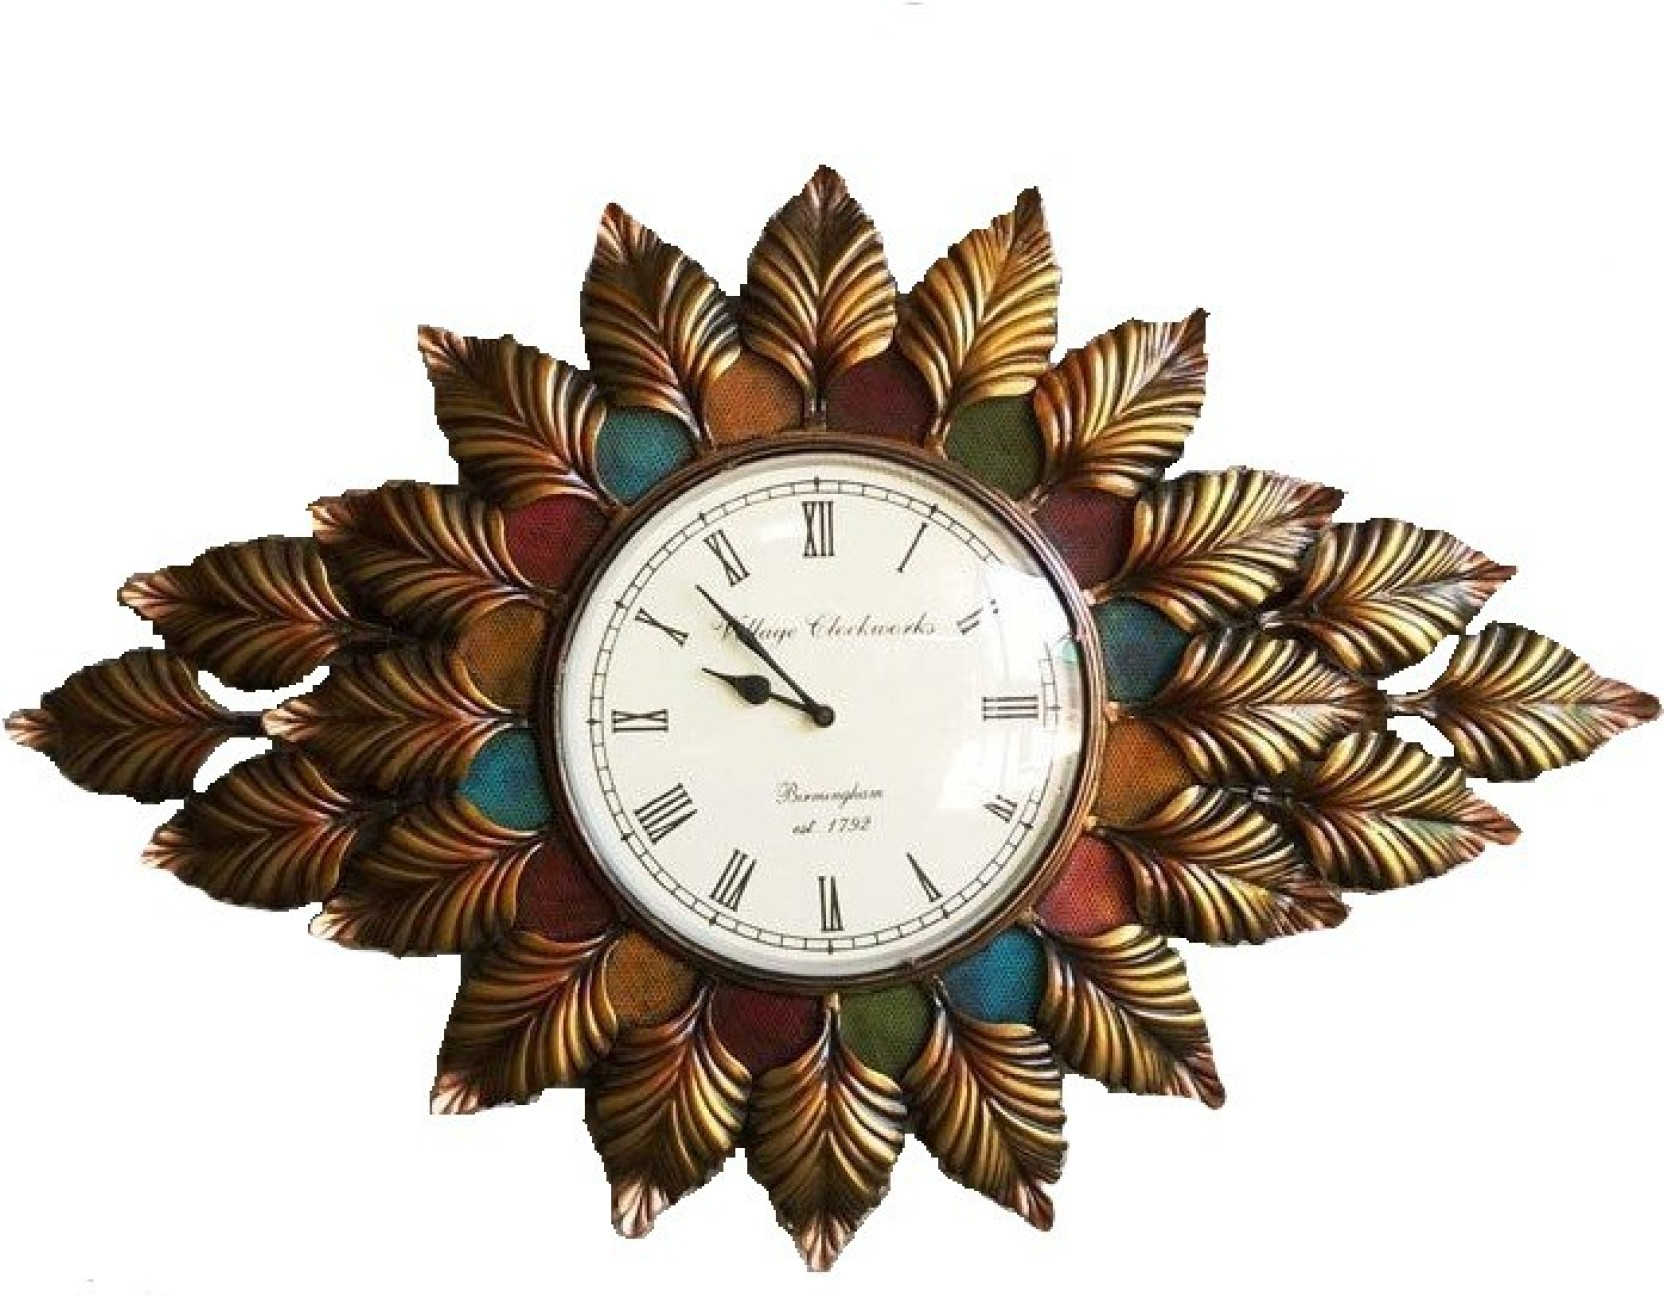 Village Clock works Analog Wall Clock Price in India - Buy Village Clock works Analog Wall Clock ...